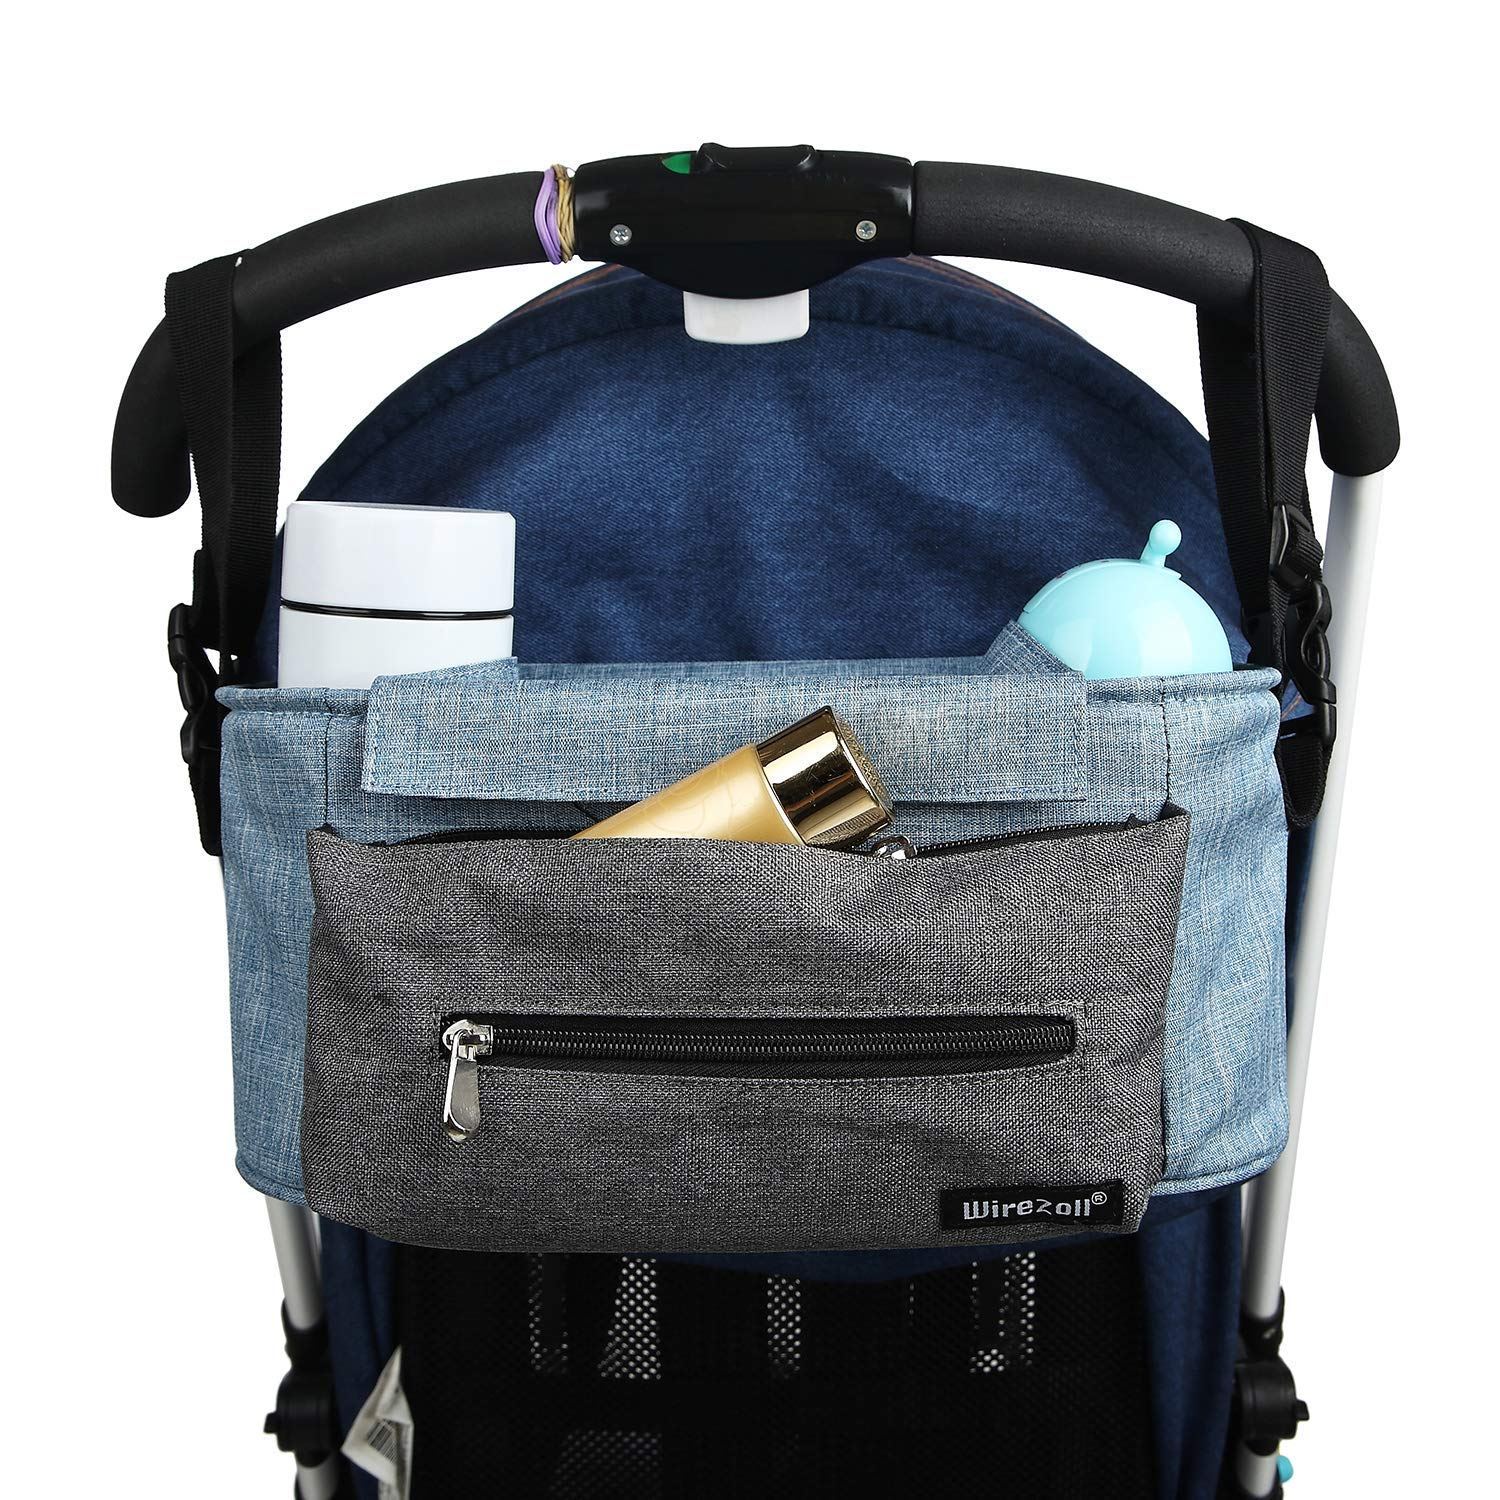 Stroller Organizer Bag - Wirezoll Fits All Baby Stroller Models, with High-Capacity & Adjustable Straps for Carrying Bottles, Diapers,Clothing, Toys & Snacks etc (Grey)